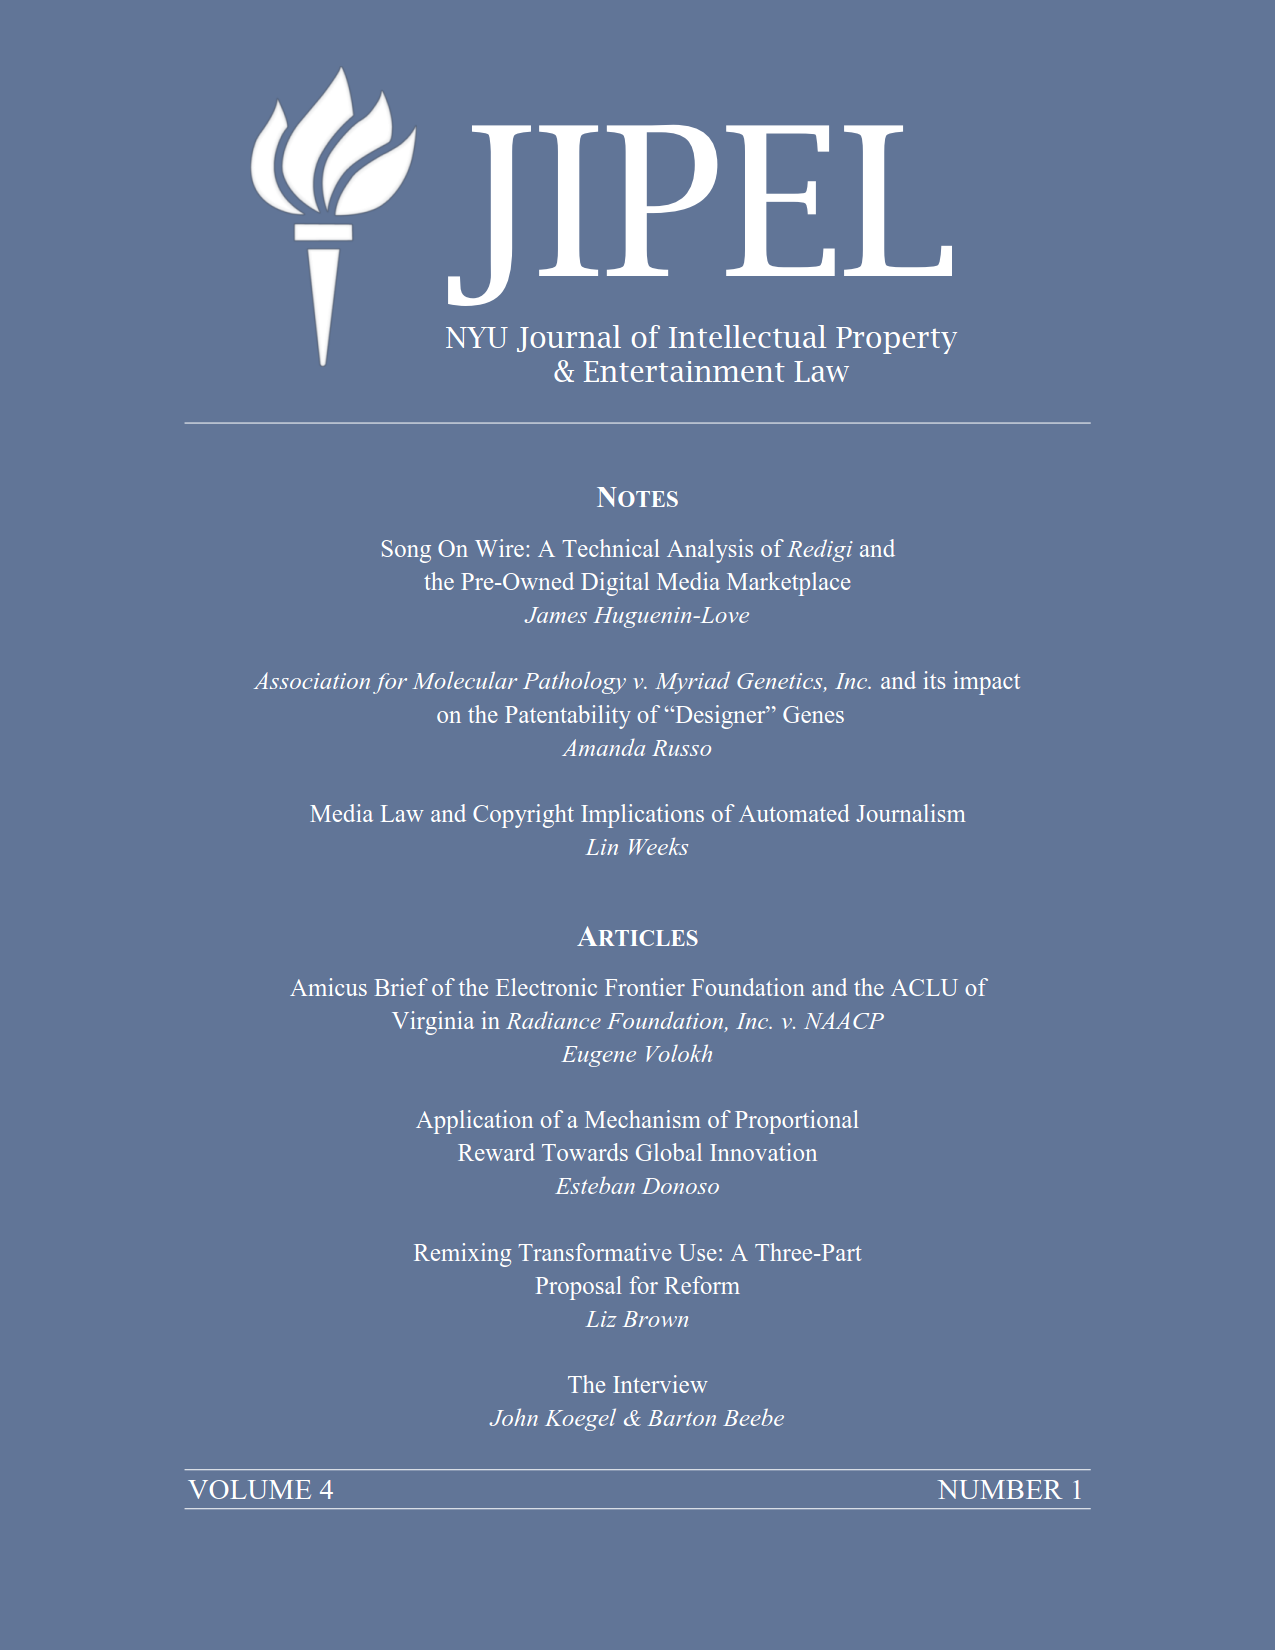 Jipel Vol 4 No 1 1988 Jeep Wrangler Wiring Harness Install Feelin 39 Burned Jp The Nyu Journal Of Intellectual Property And Entertainment Law Is Proud To Present Its Winter 2014 Edition While Individual Pdfs Articles